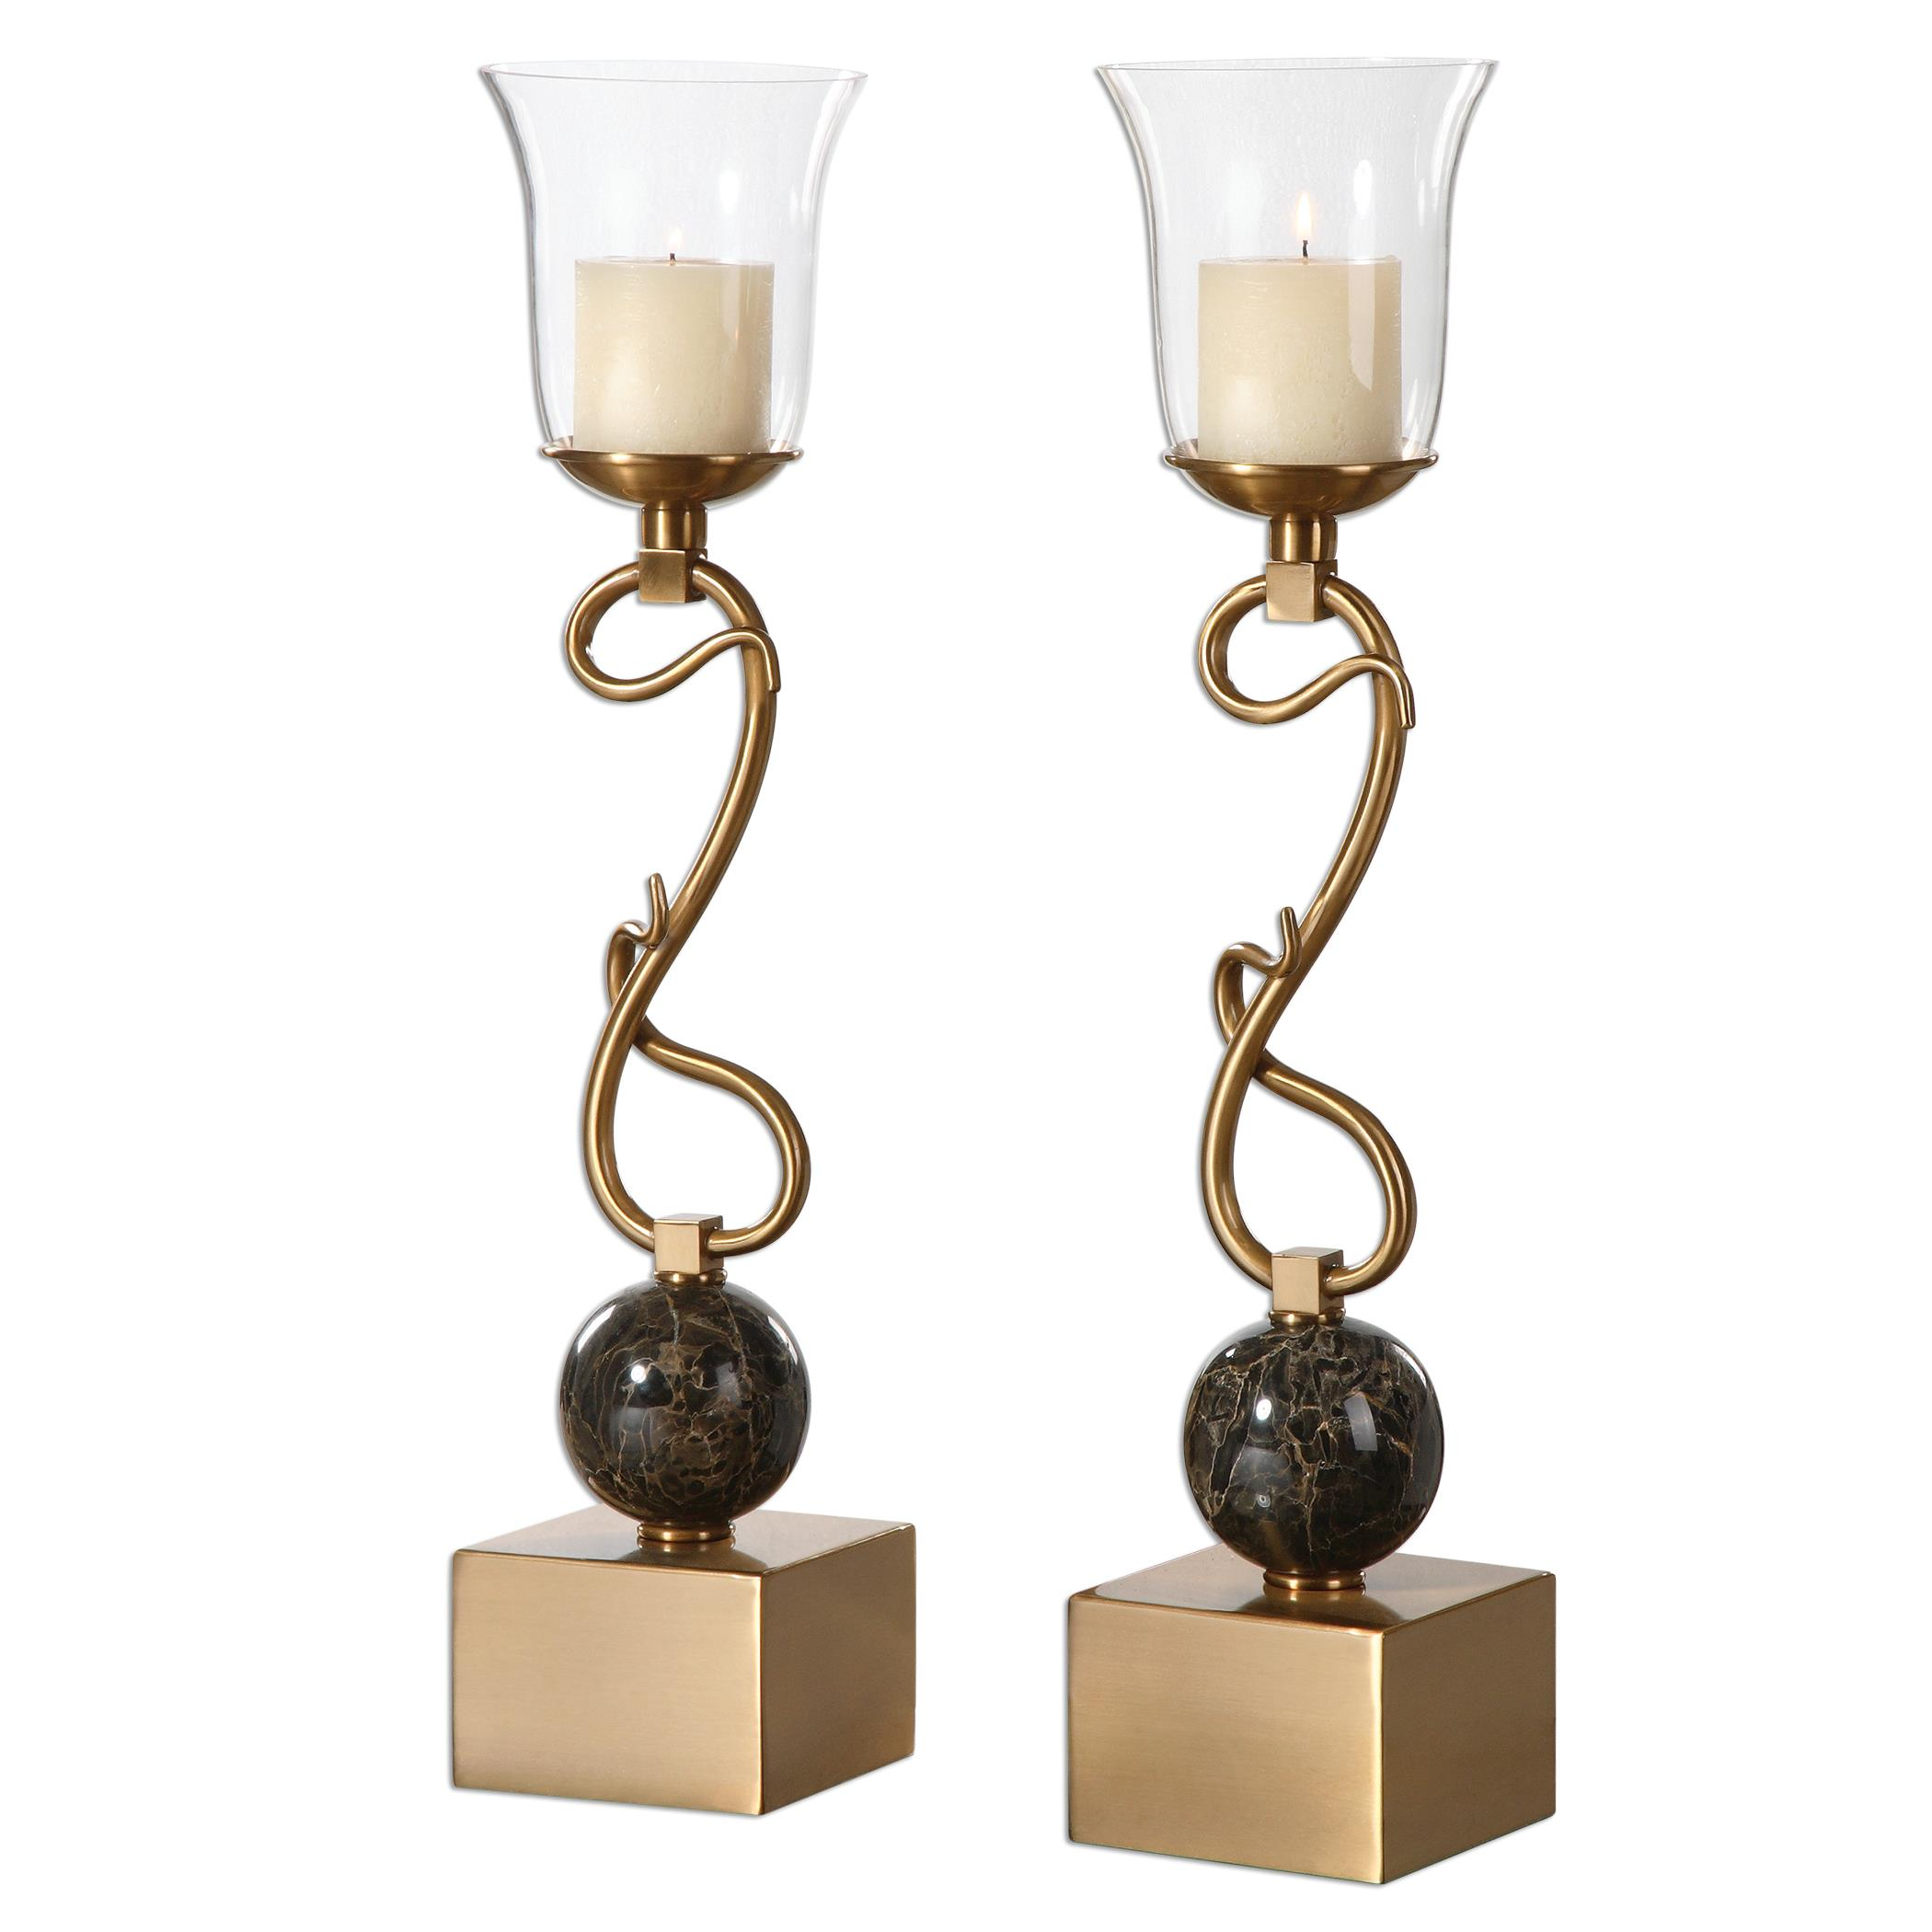 Uttermost Accessories Attila Coffee Bronze Candleholders, S/2 - Item Number: 19999